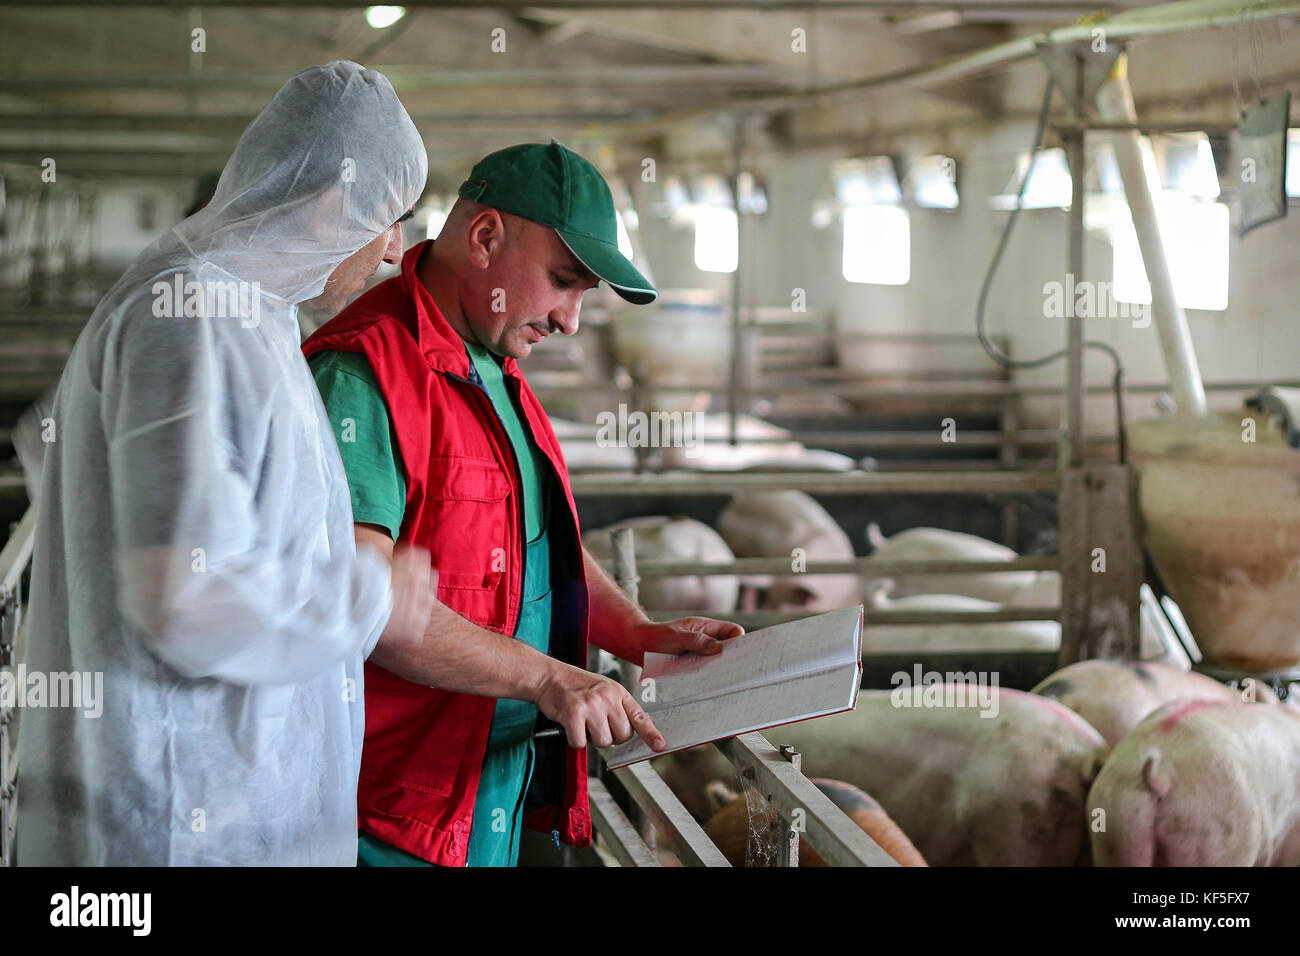 Veterinarian doctor examining pigs at a pig farm. Intensive pig farming. Pig farm worker. - Stock Image